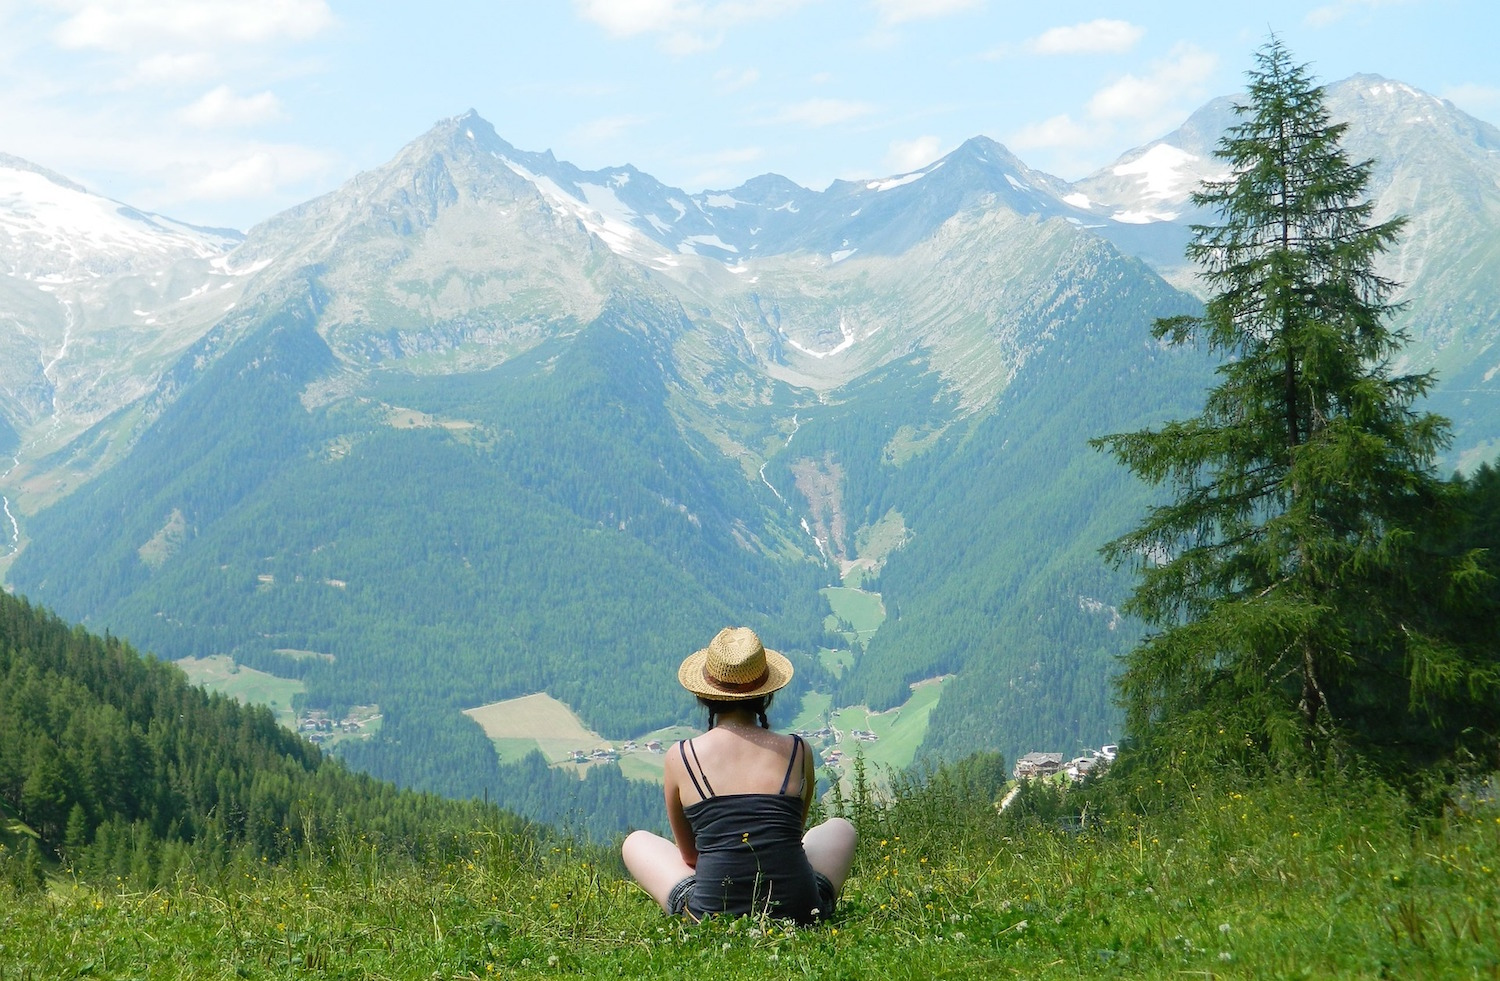 The Ultimate List of Hiking Trail Websites